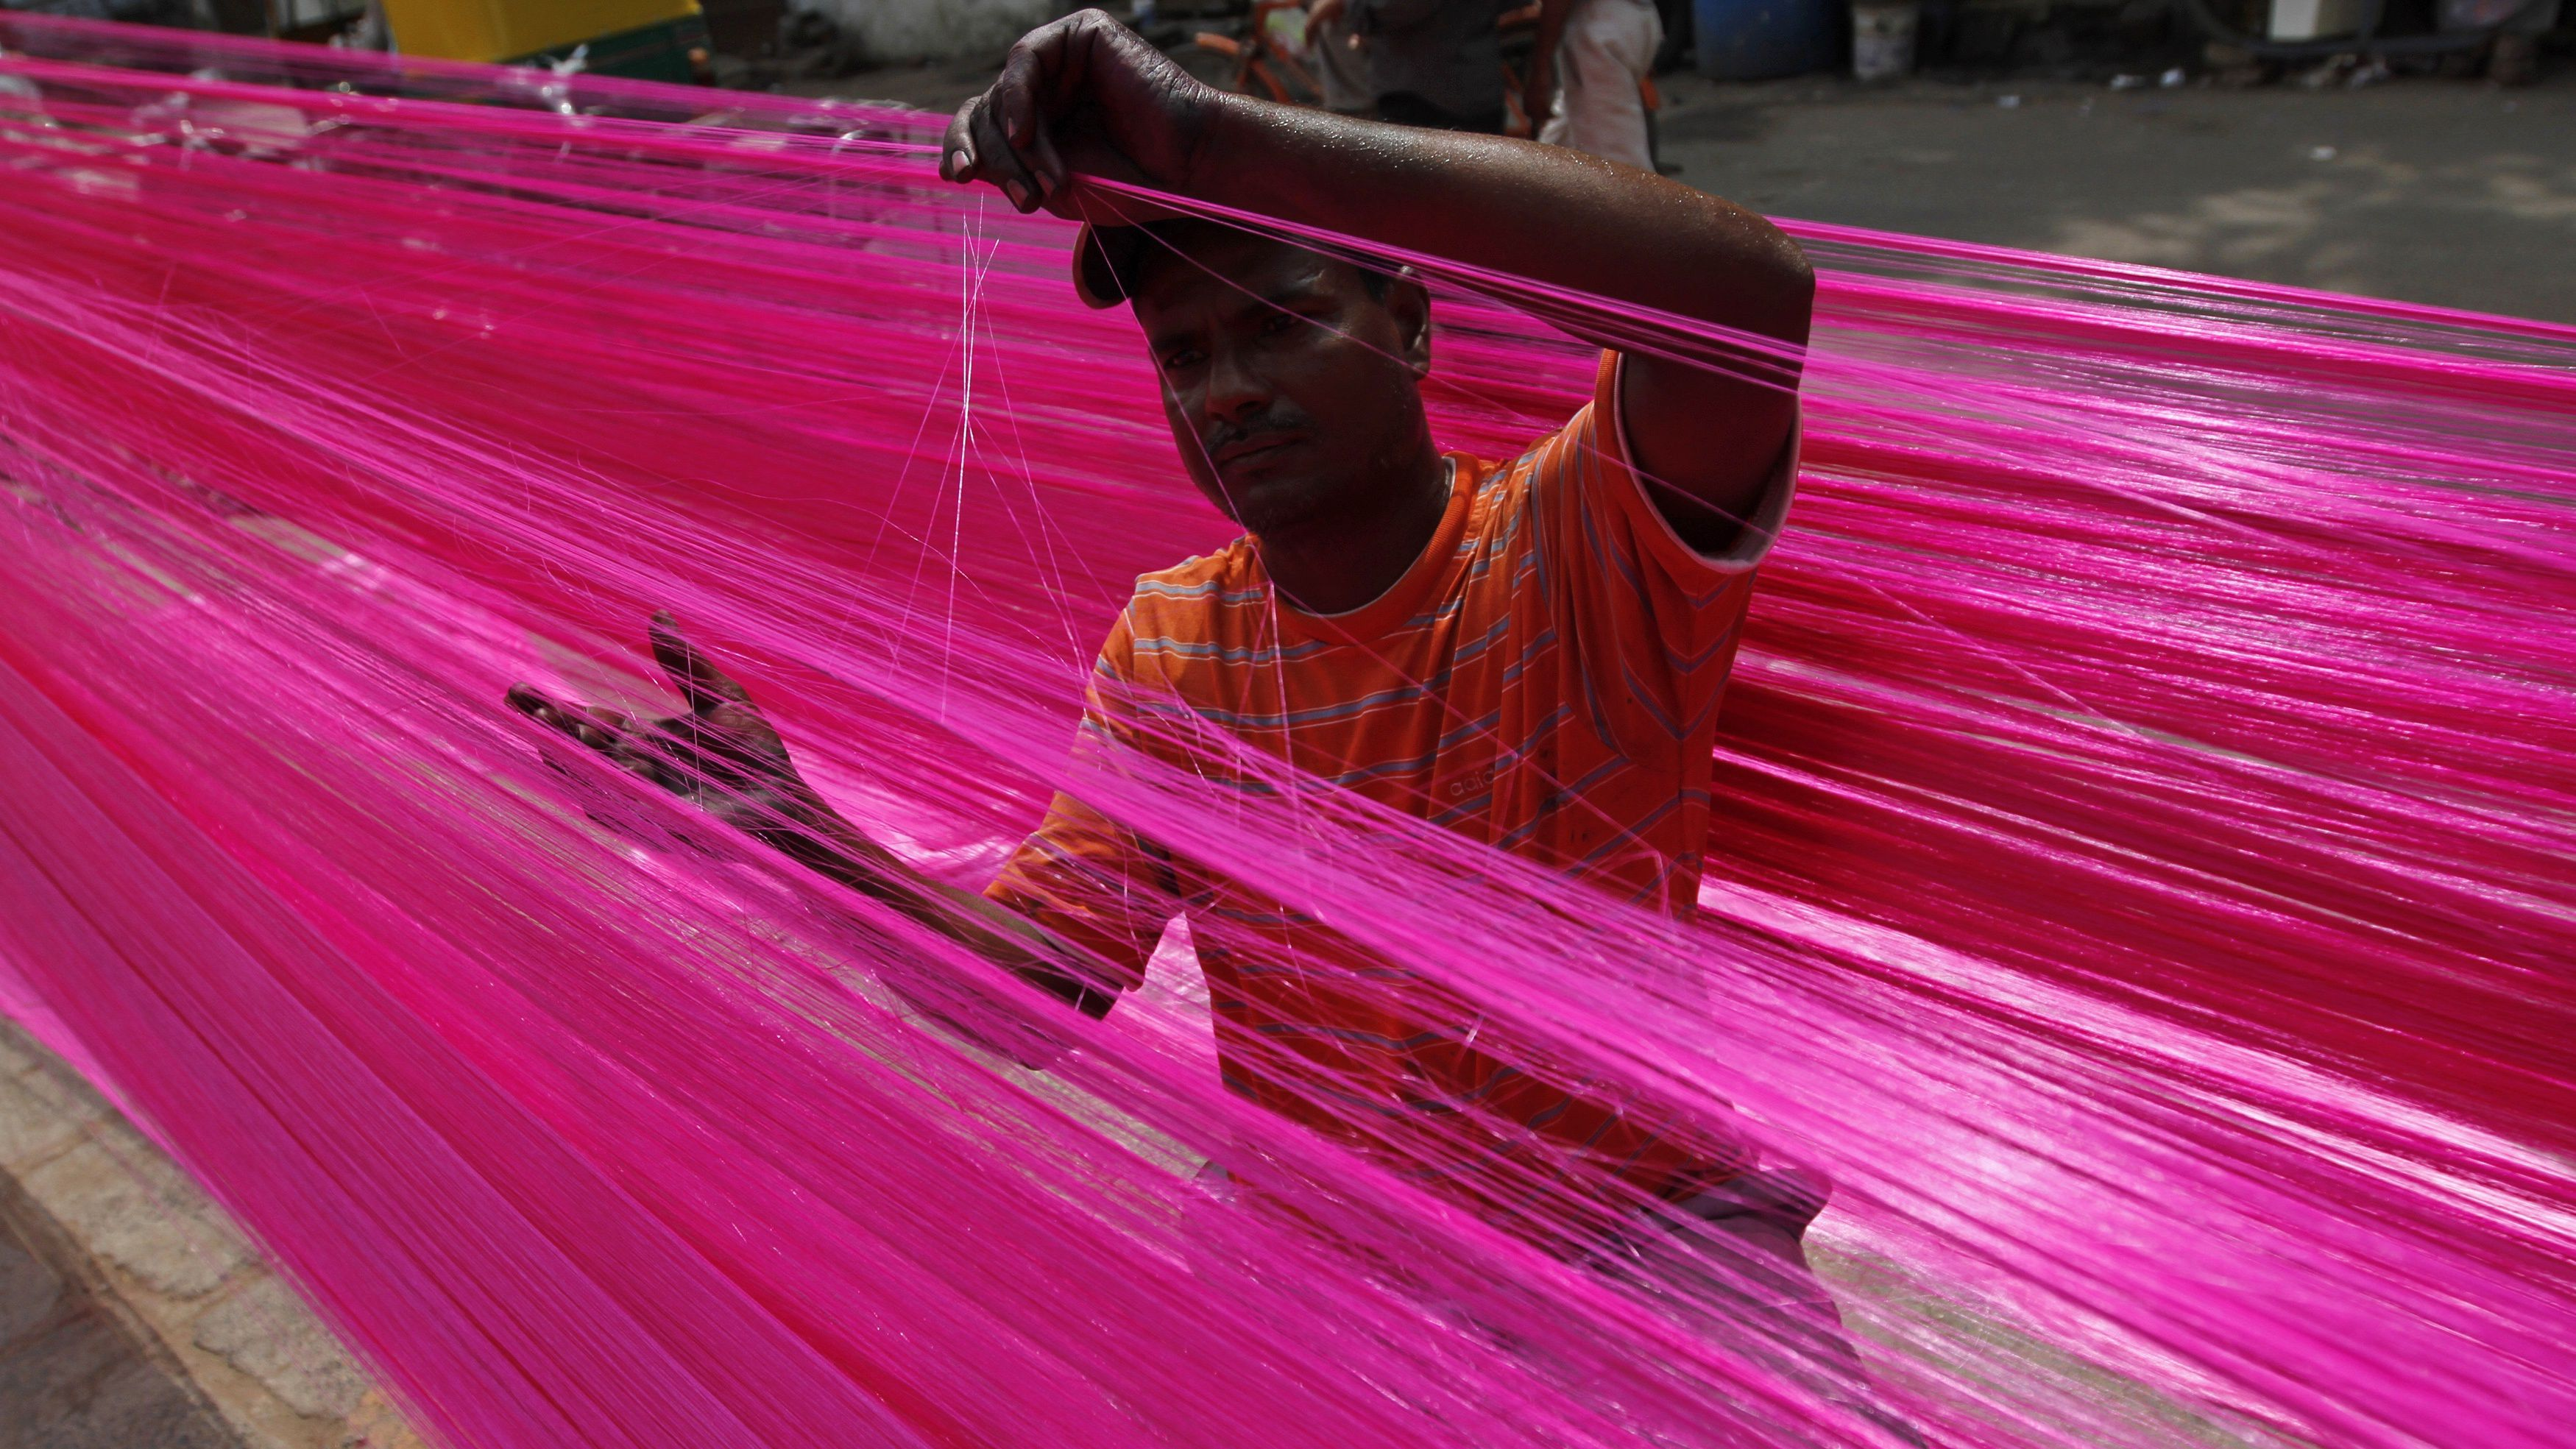 A man checks polyester thread kept for drying to make artificial garlands ahead of the Diwali festival in the western Indian city of Ahmedabad October 11, 2011. Artificial garlands are sold in large numbers during Diwali, the annual Hindu festival of lights, when people buy these to decorate their homes.